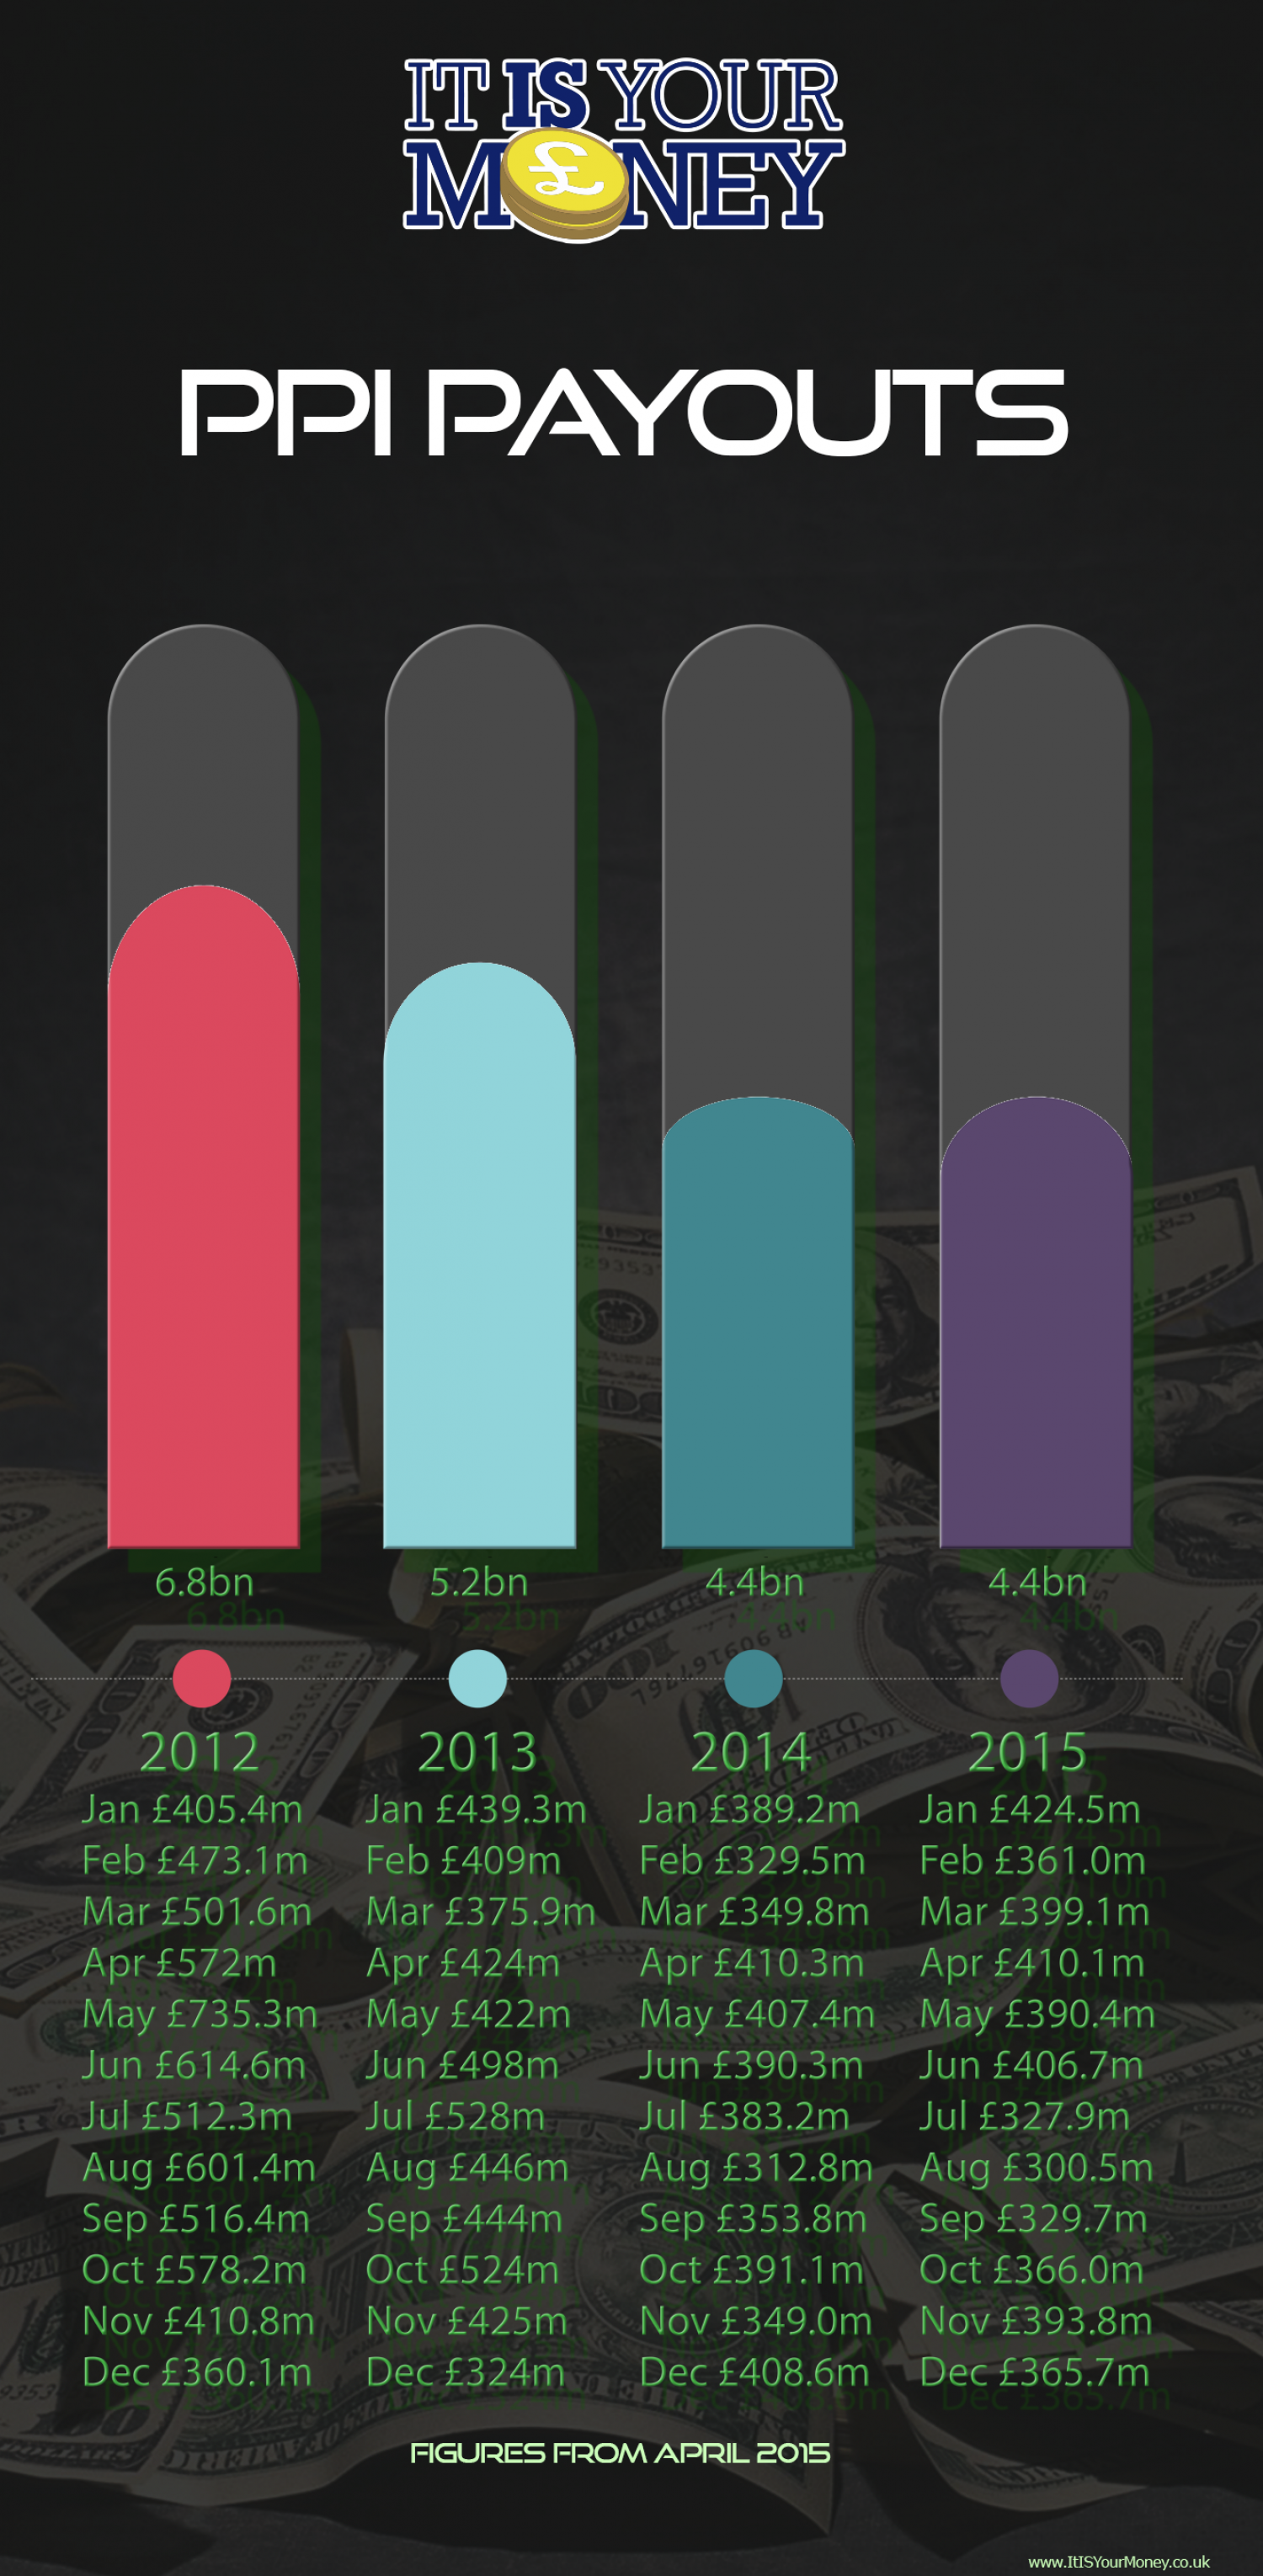 PPI PAYOUTS Infographic